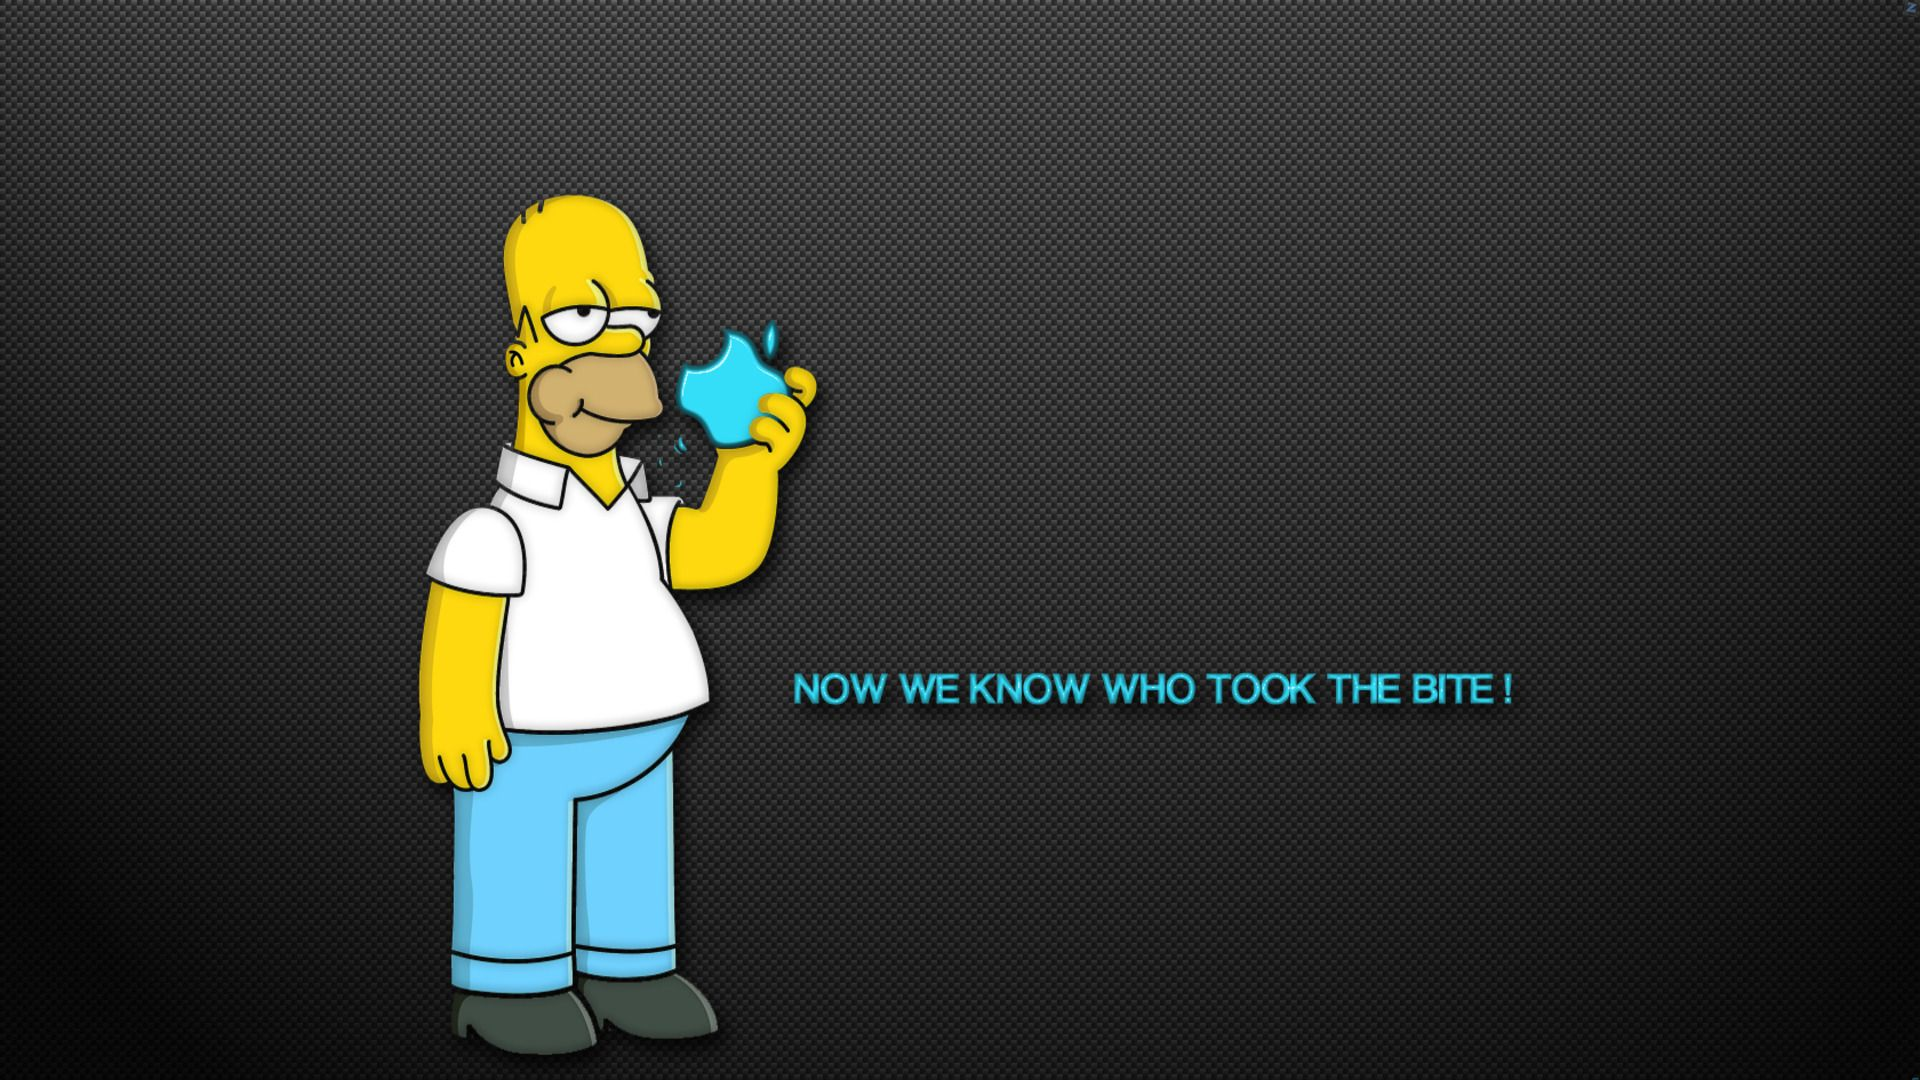 Apple, Cartoon, Funny, Homer, Humor, Quotes, Simpsons, Text